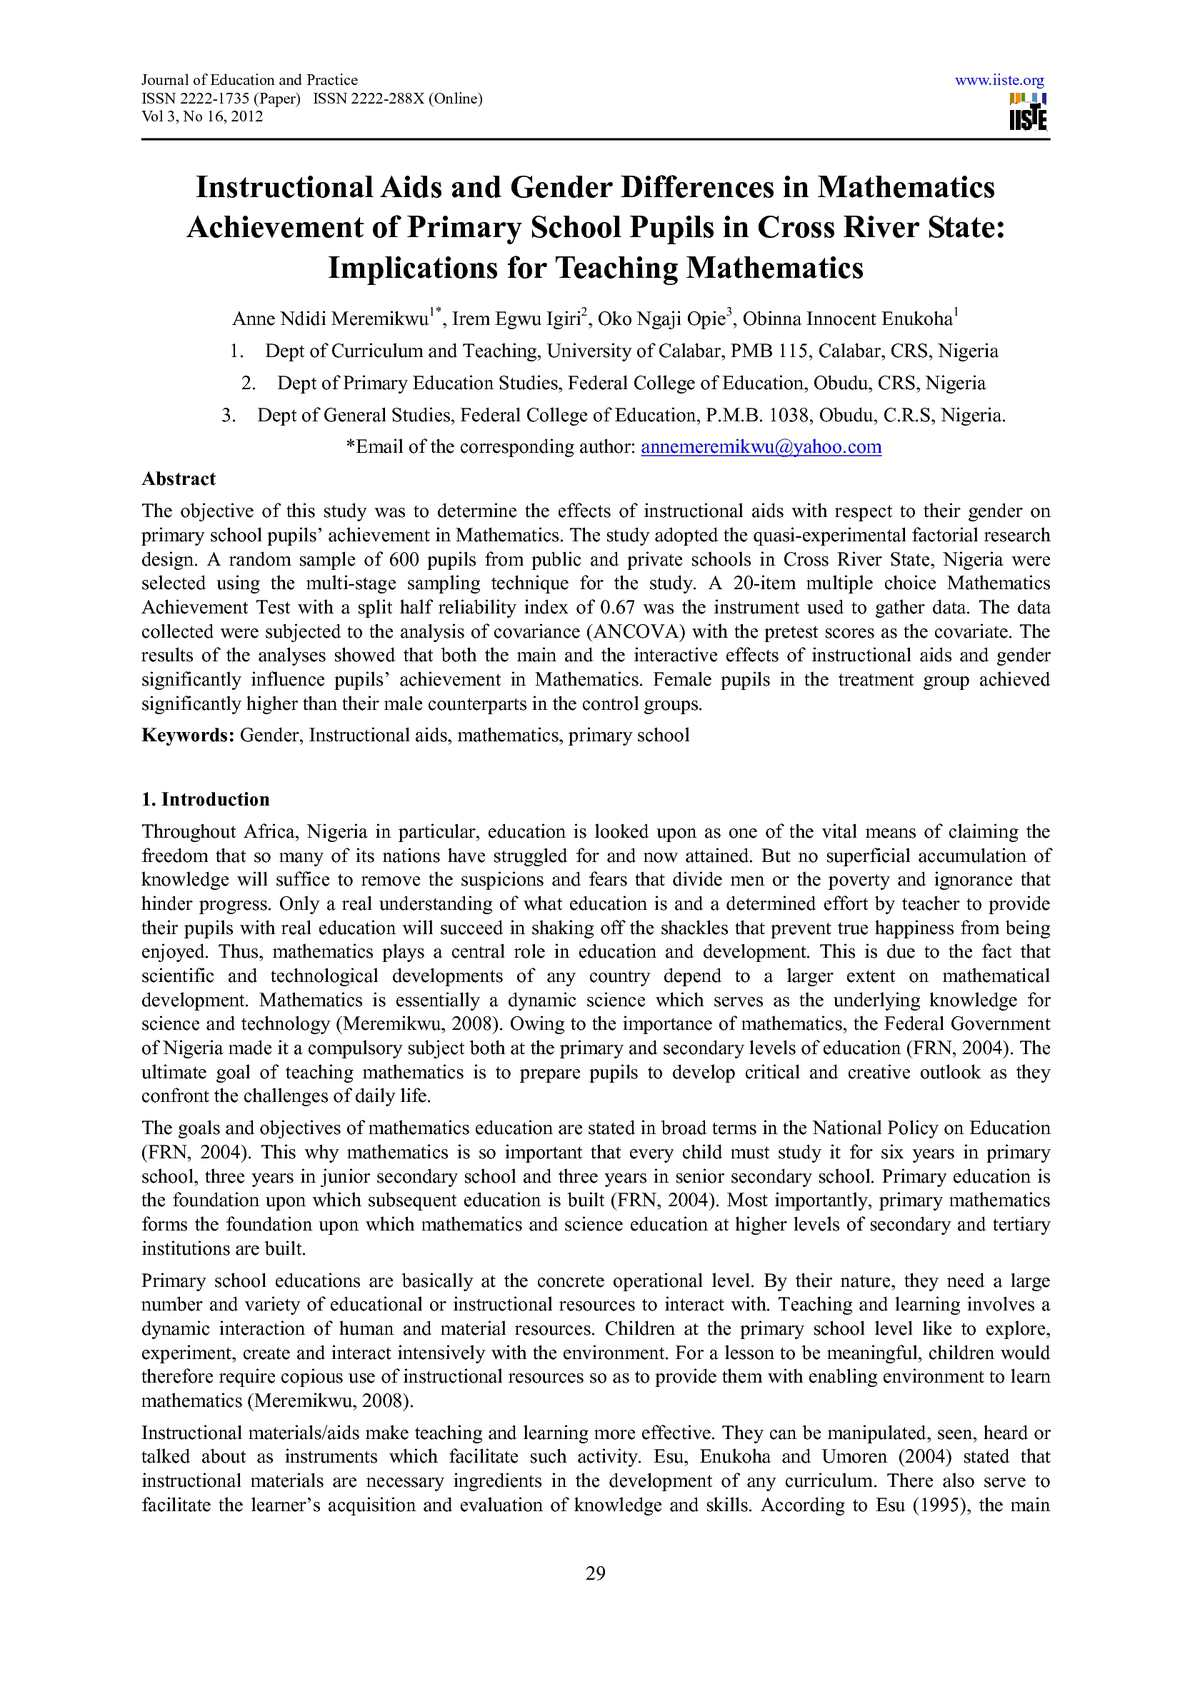 Calaméo - Instructional Aids and Gender Differences in Mathematics